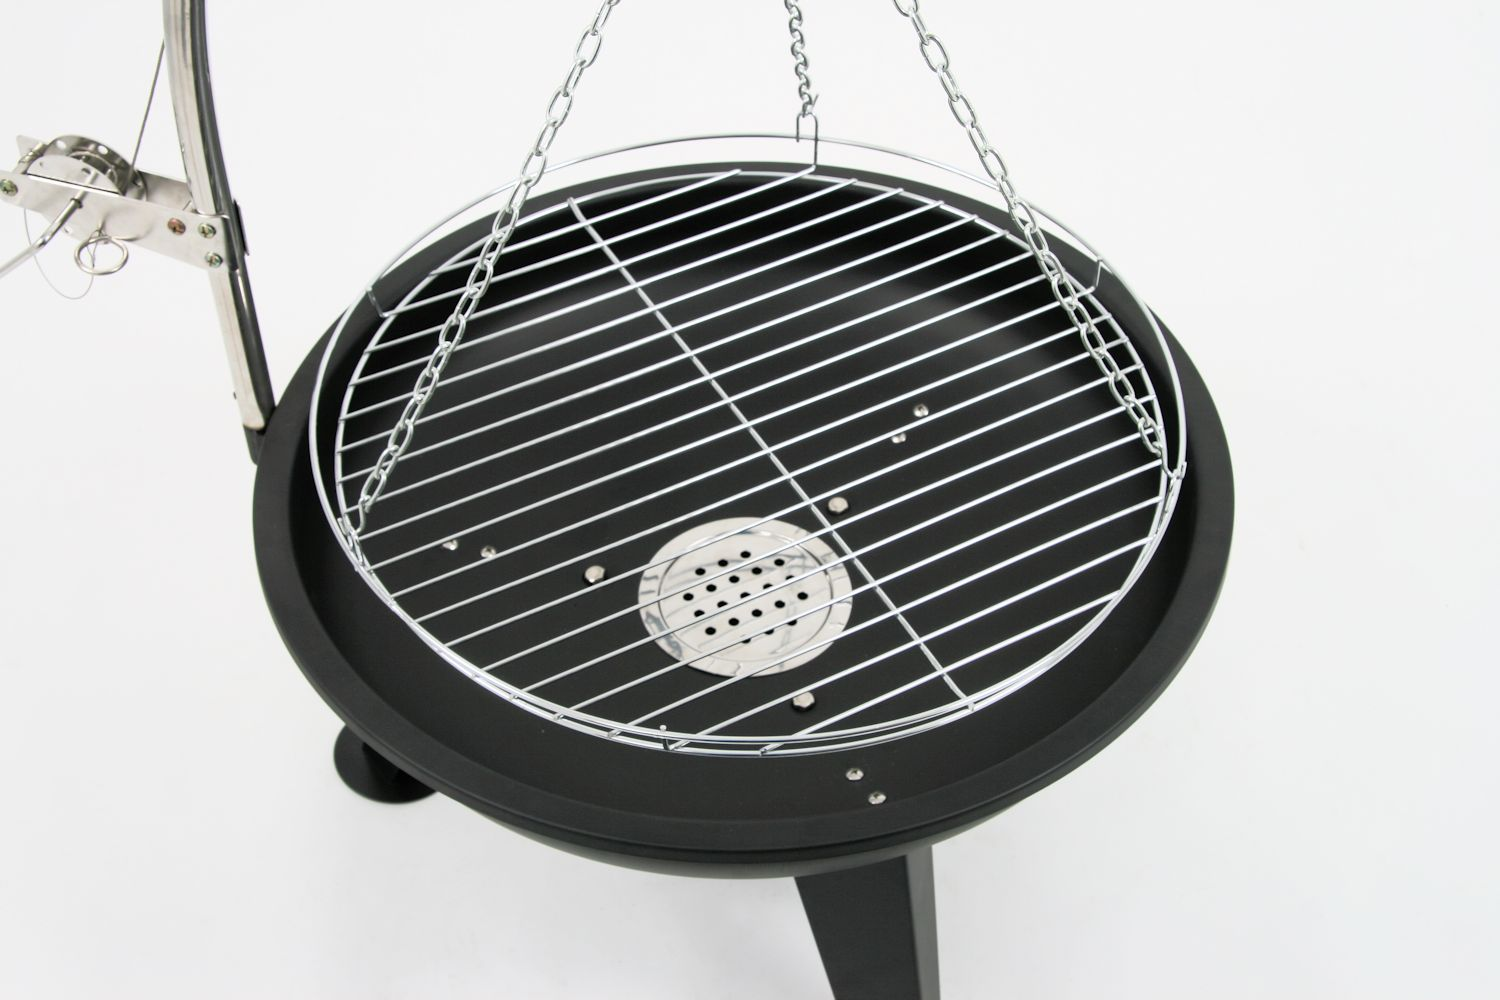 bbq toro schwenkgrill holzkohle grill 64 cm schwenker mit grillrost cs clever. Black Bedroom Furniture Sets. Home Design Ideas